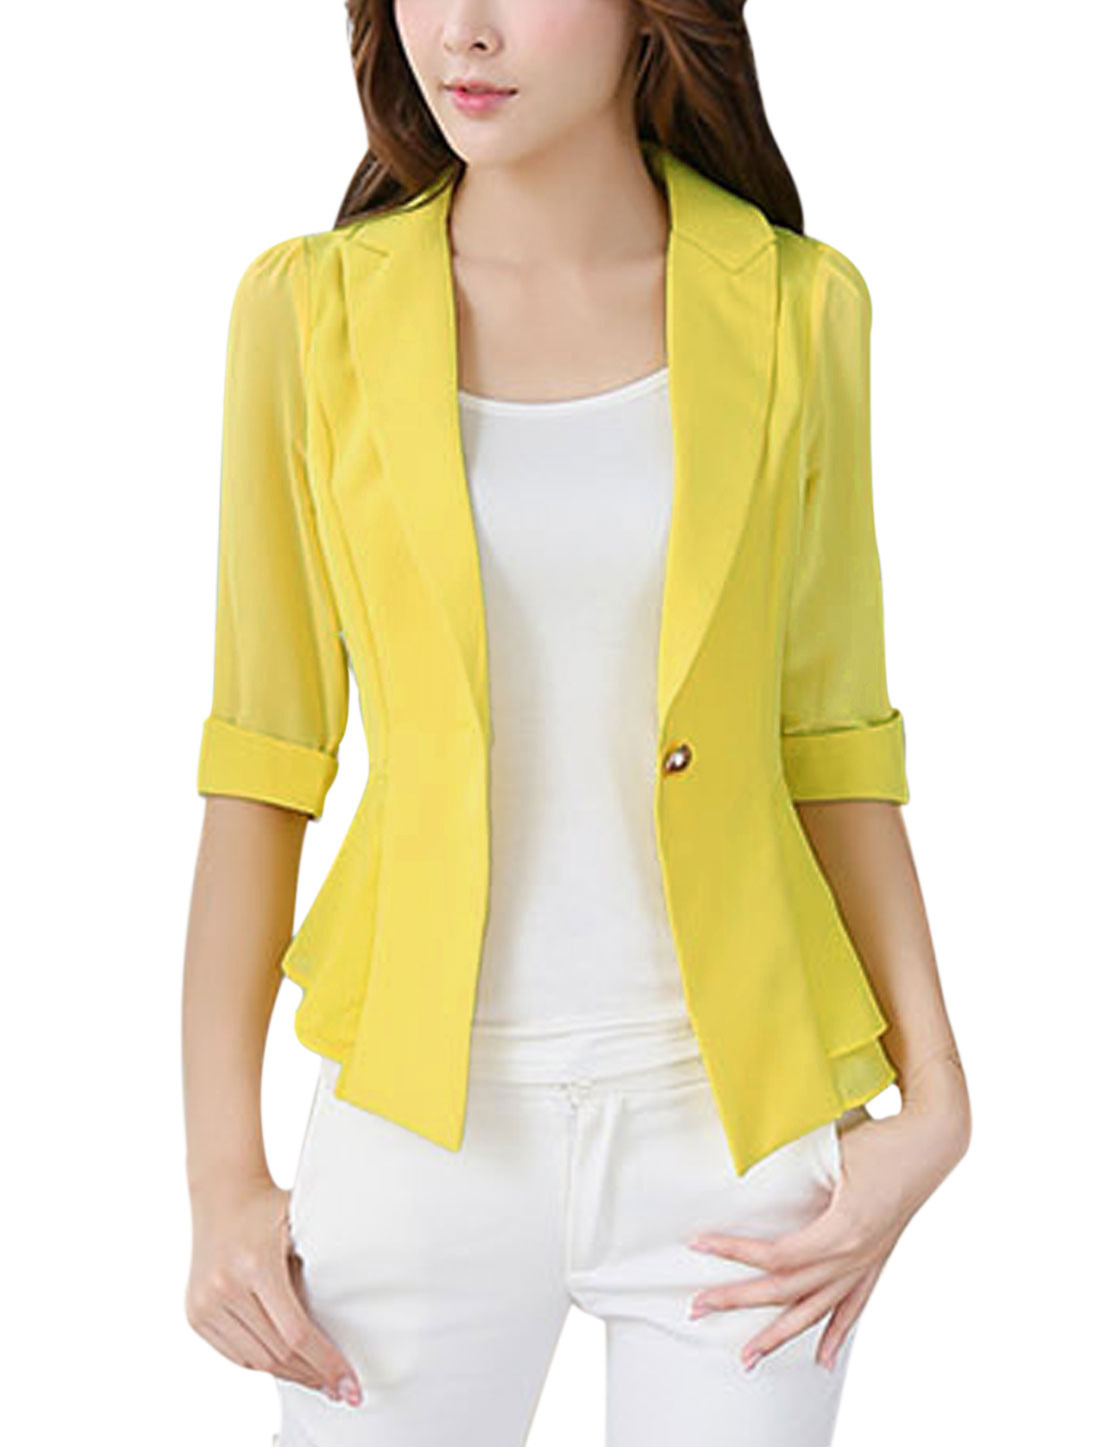 Lady Notched Lapel Chiffon Panel Casual Blazer Jacket Yellow M